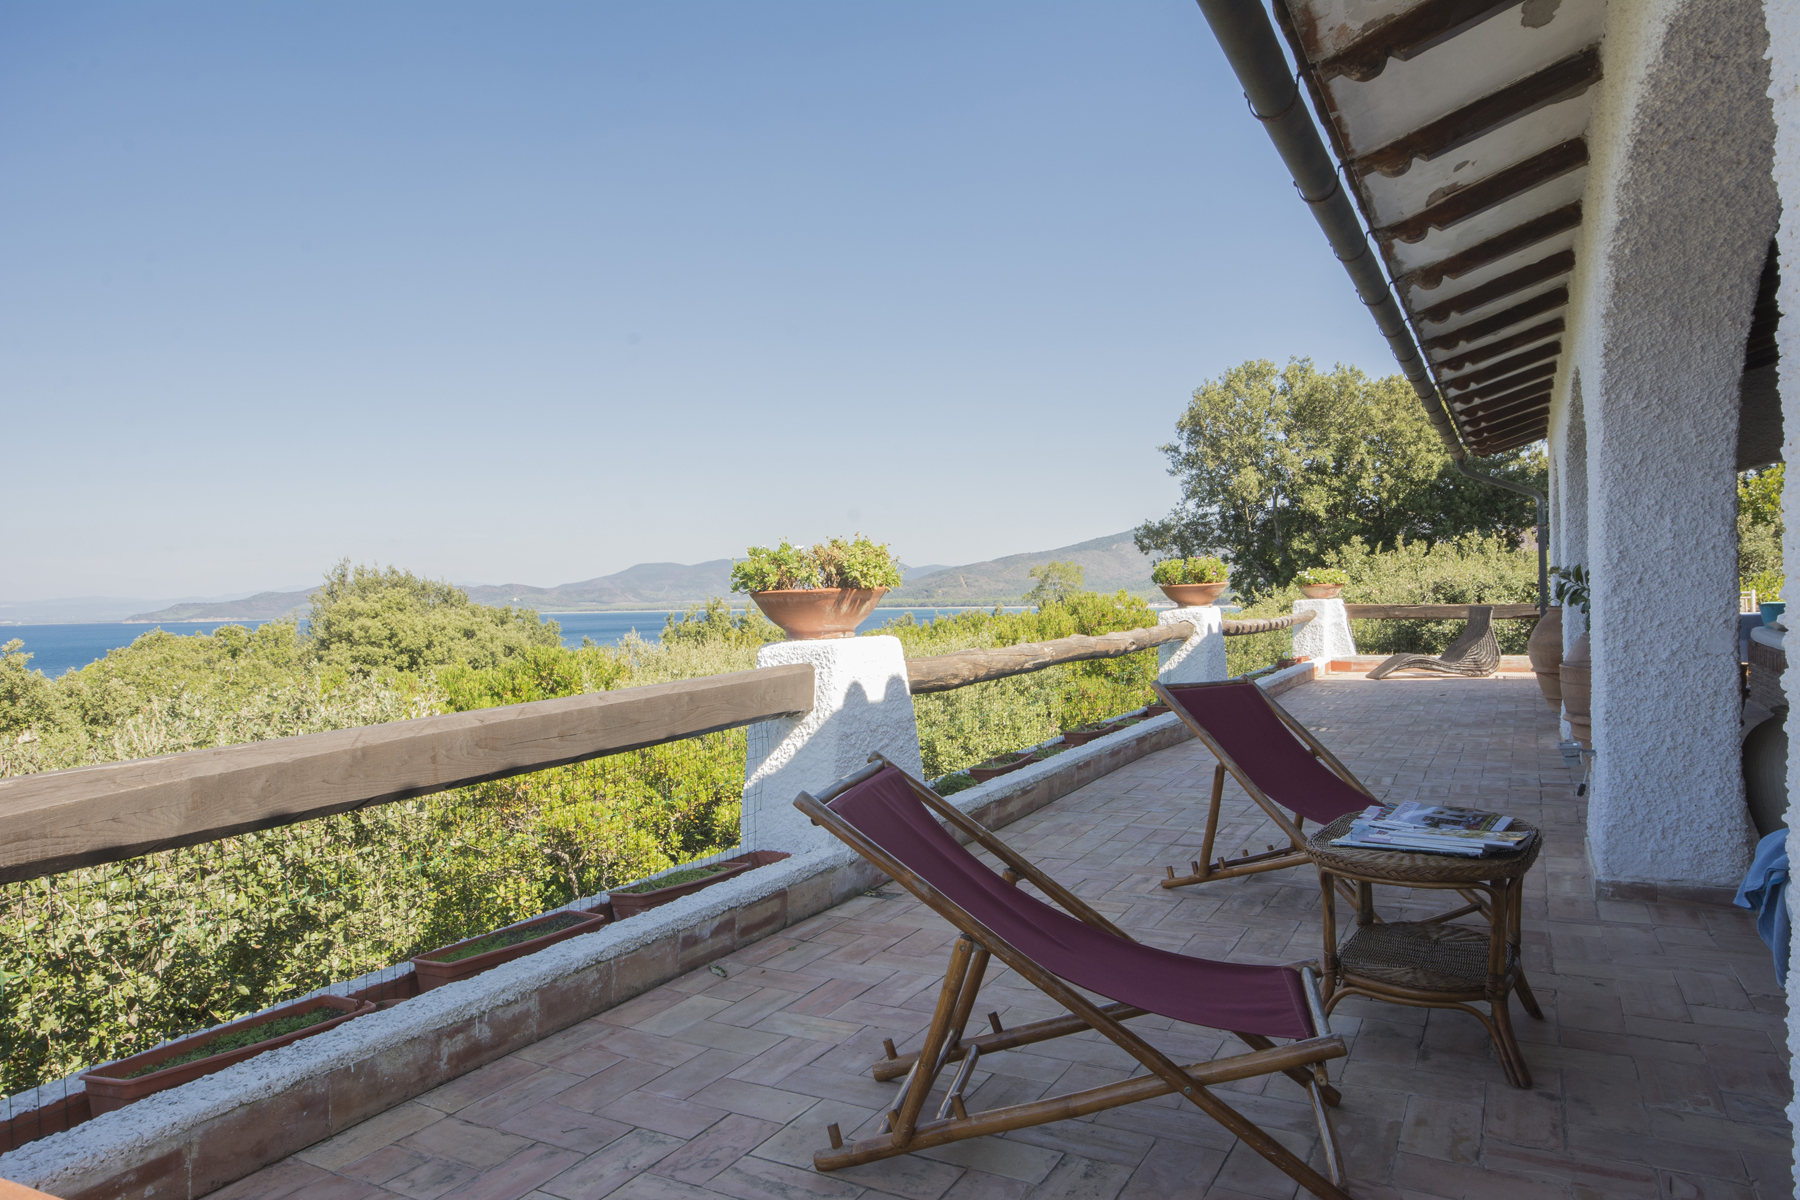 Single Family Home for Sale at Charming Villa with breathtaking view of the sea Punta Ala, Grosseto Italy